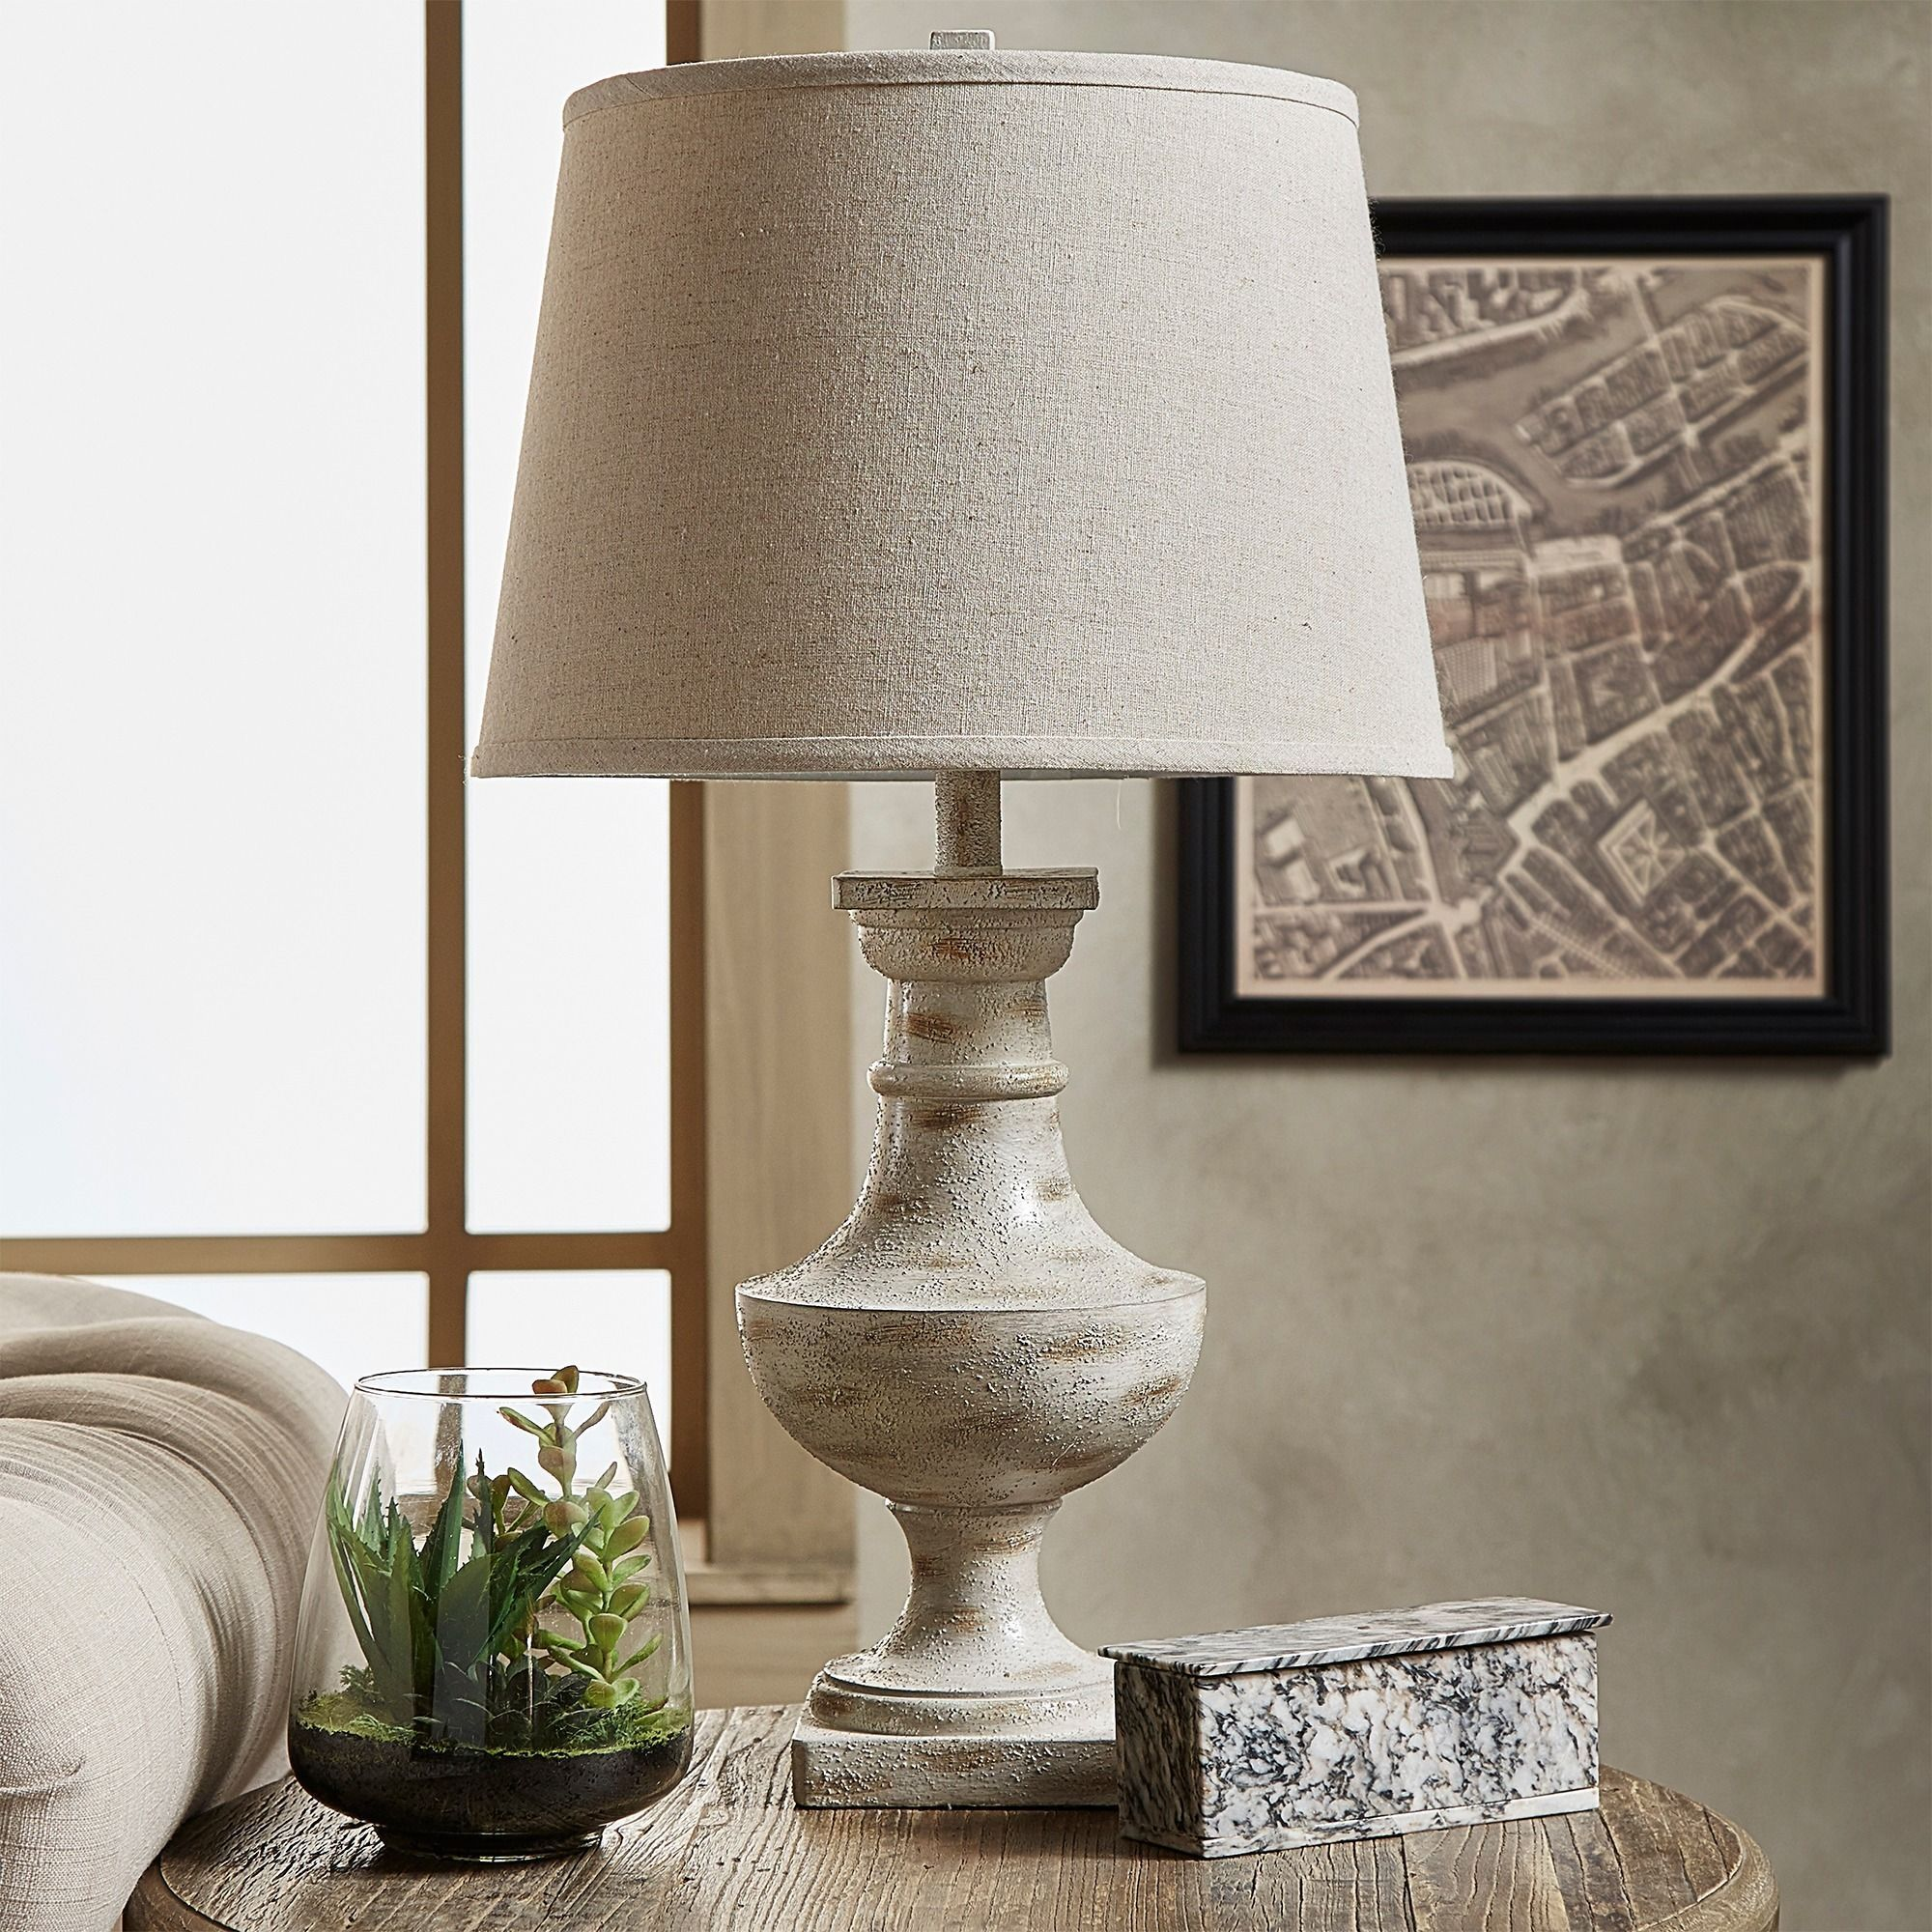 Tribecca Home Hyperion Sanded & Rustic(190) Table Lamps: Brighten your home with beautiful table ... azcodes.com